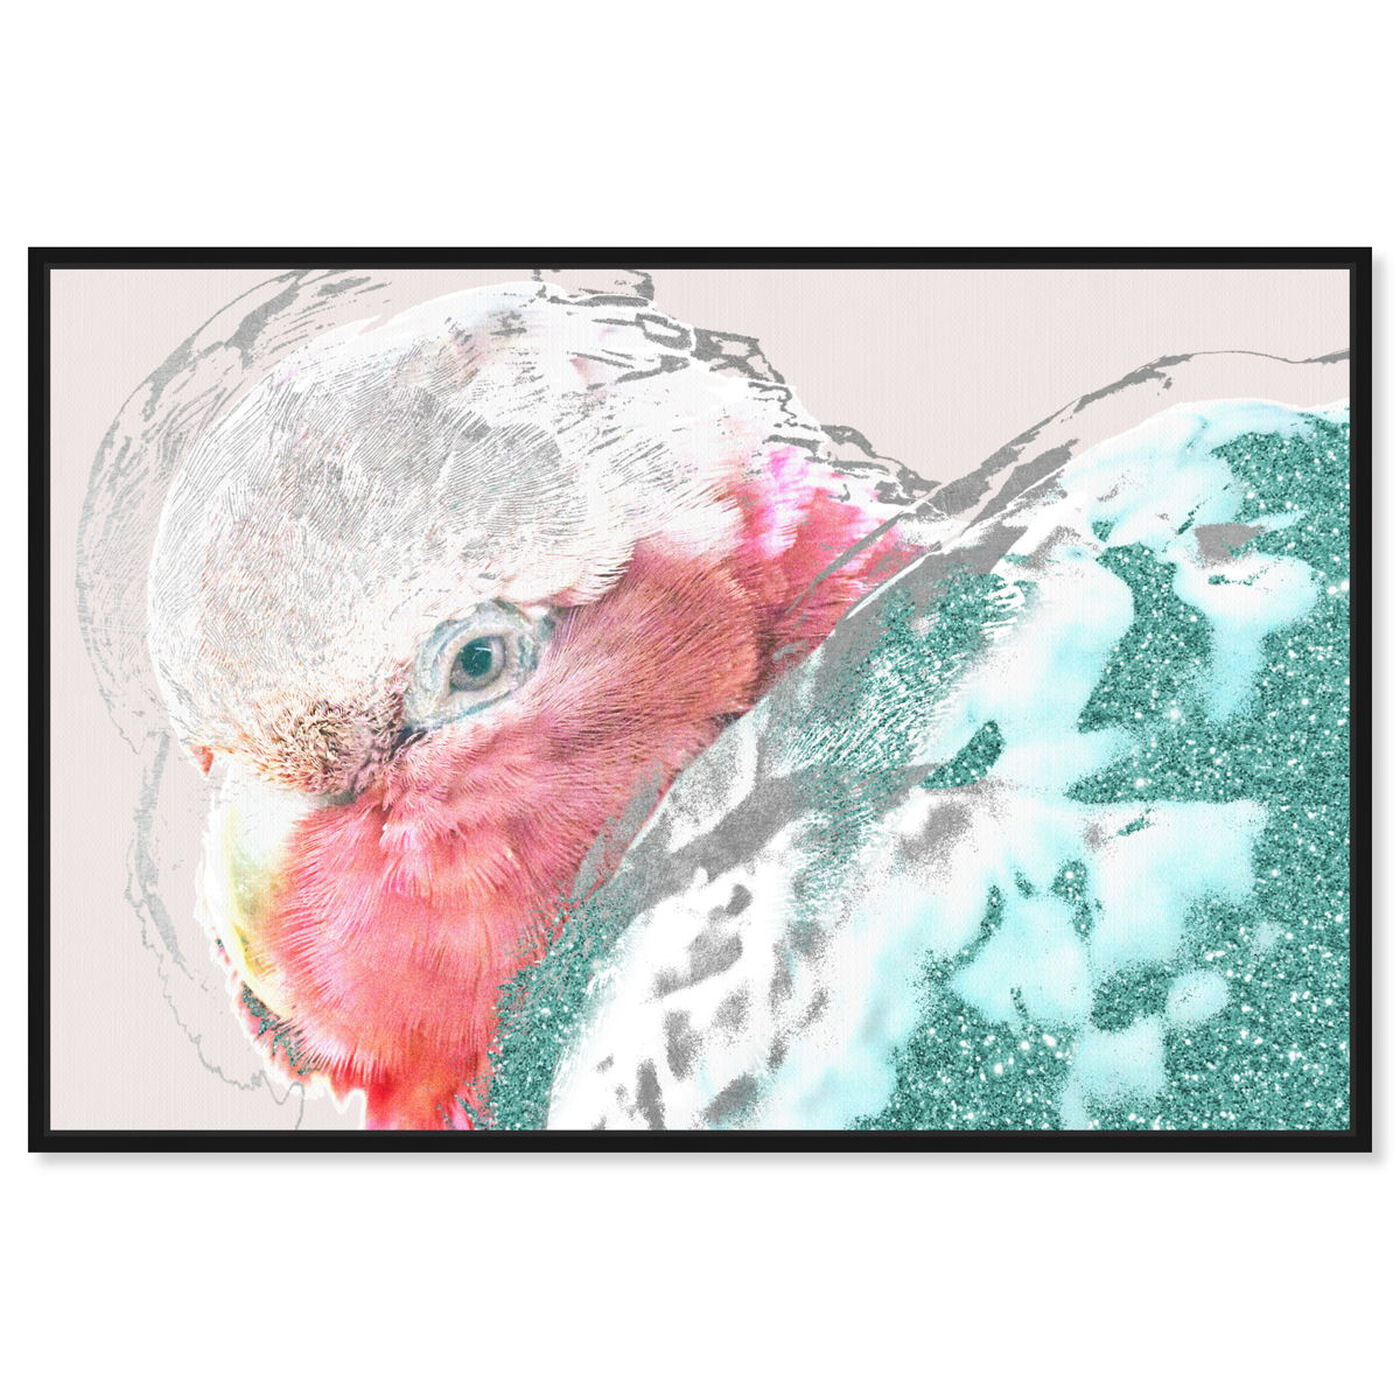 Front view of Galah featuring animals and birds art.